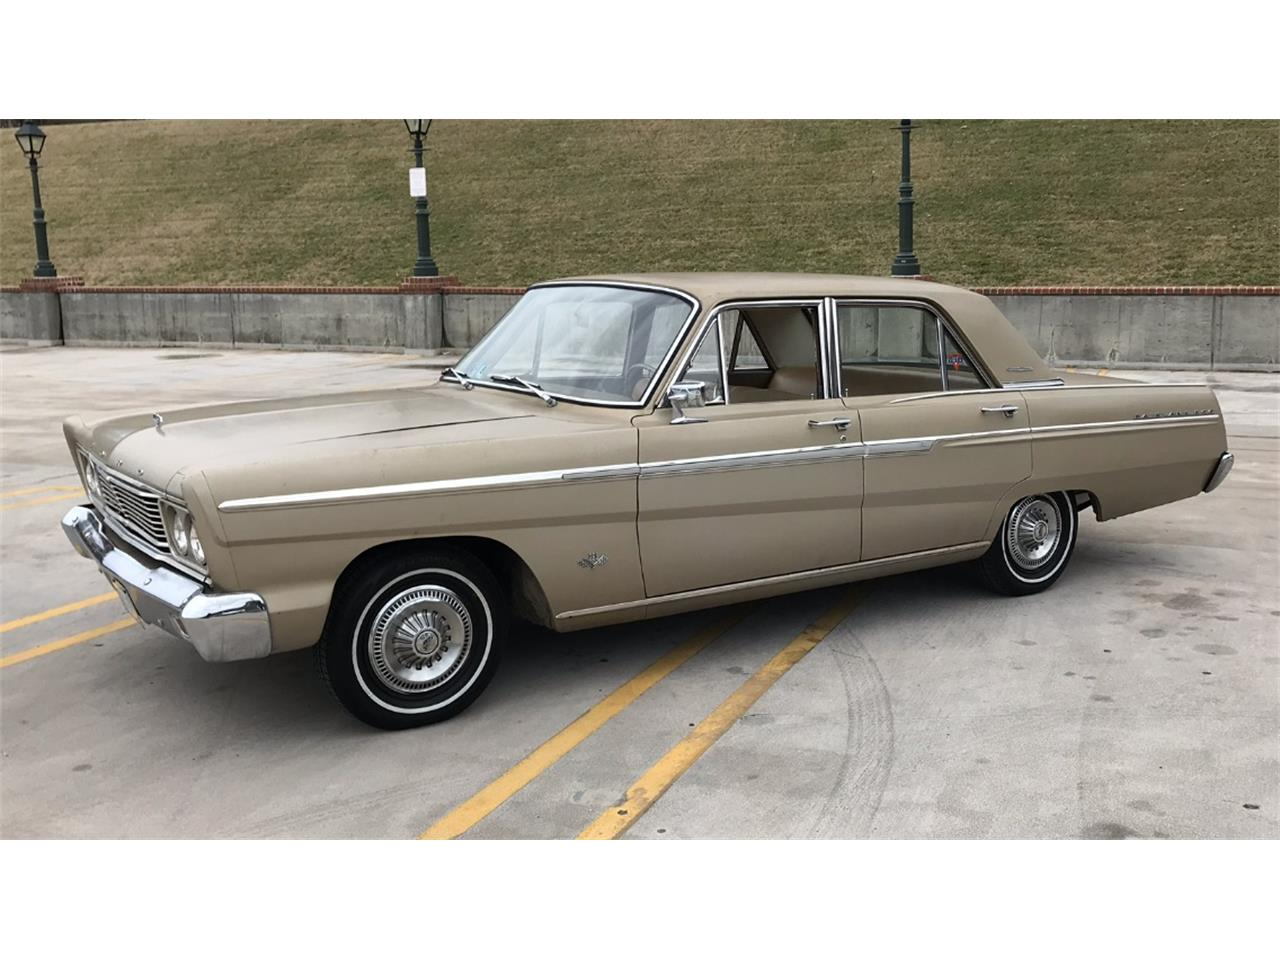 1965 Ford Fairlane 500 For Sale In Hayes Va Classiccarsbay Com